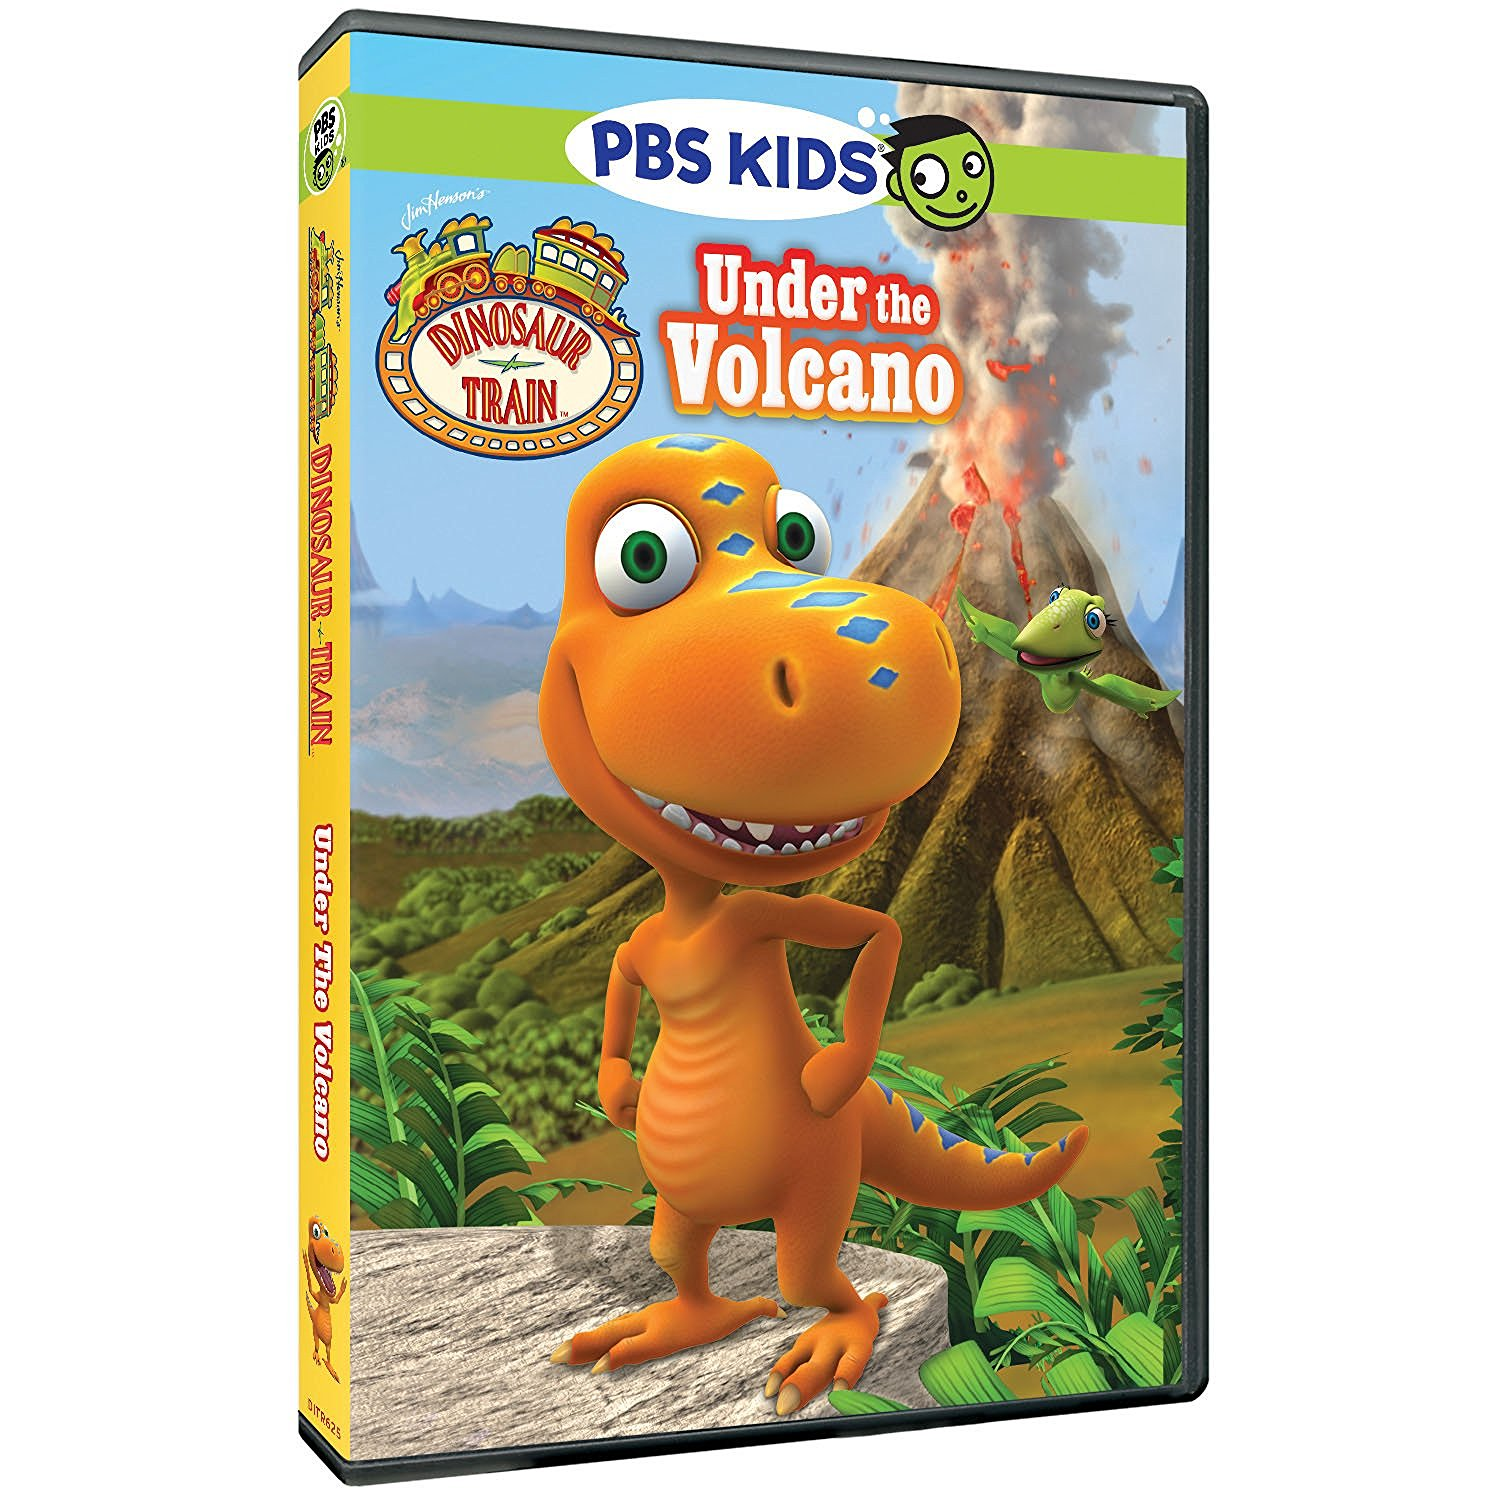 PBS Kids Dinosaur Train Under the Volcano